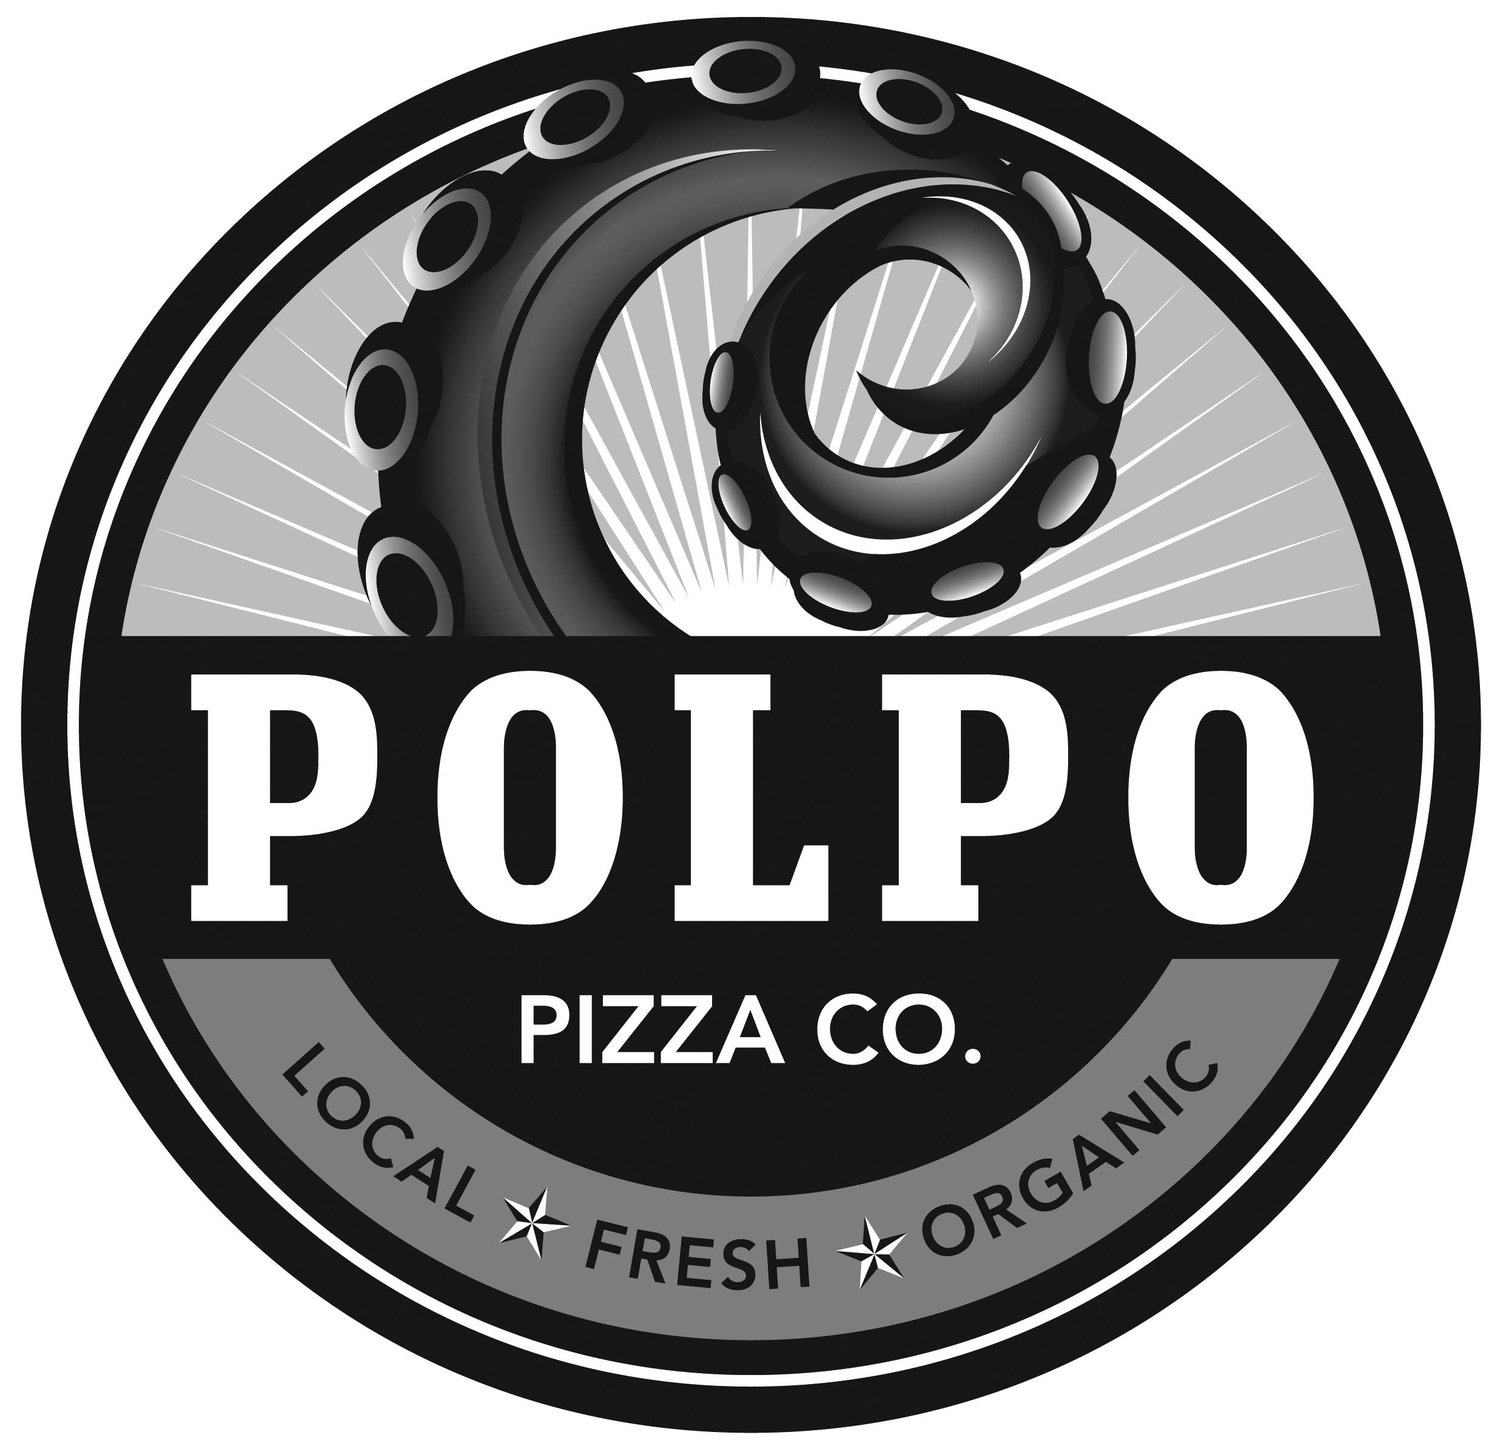 Polpo Pizza Co. - Sarasota's Best Wood-Fired Pizza Catering Truck